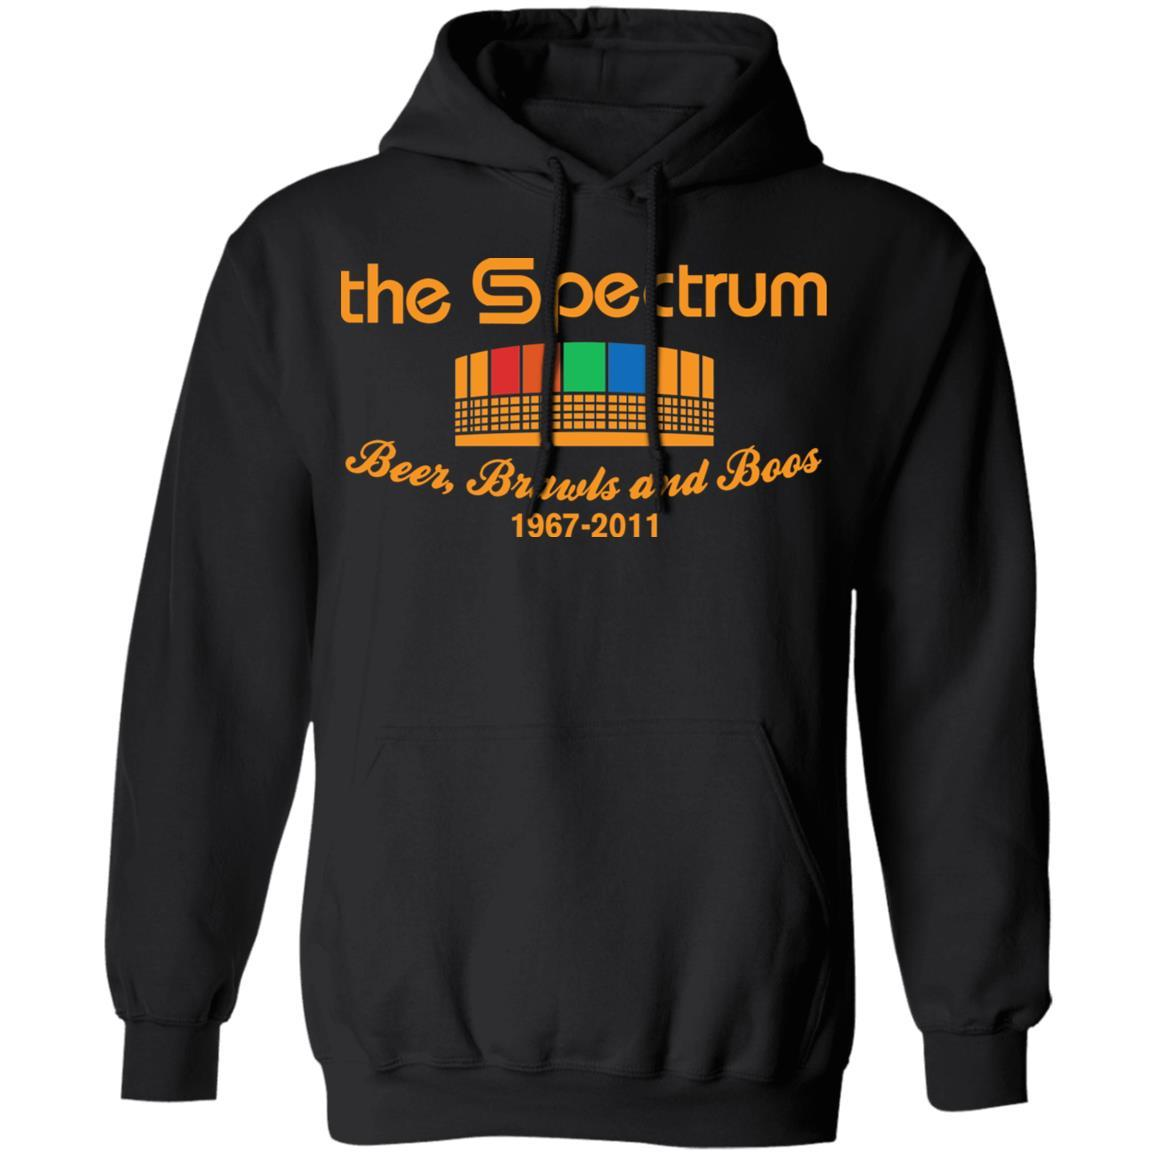 The Spectrum Beer Brawls And Boos 1967 2011 T-Shirts, Hoodies 541-4740-91821630-23087 - Tee Ript